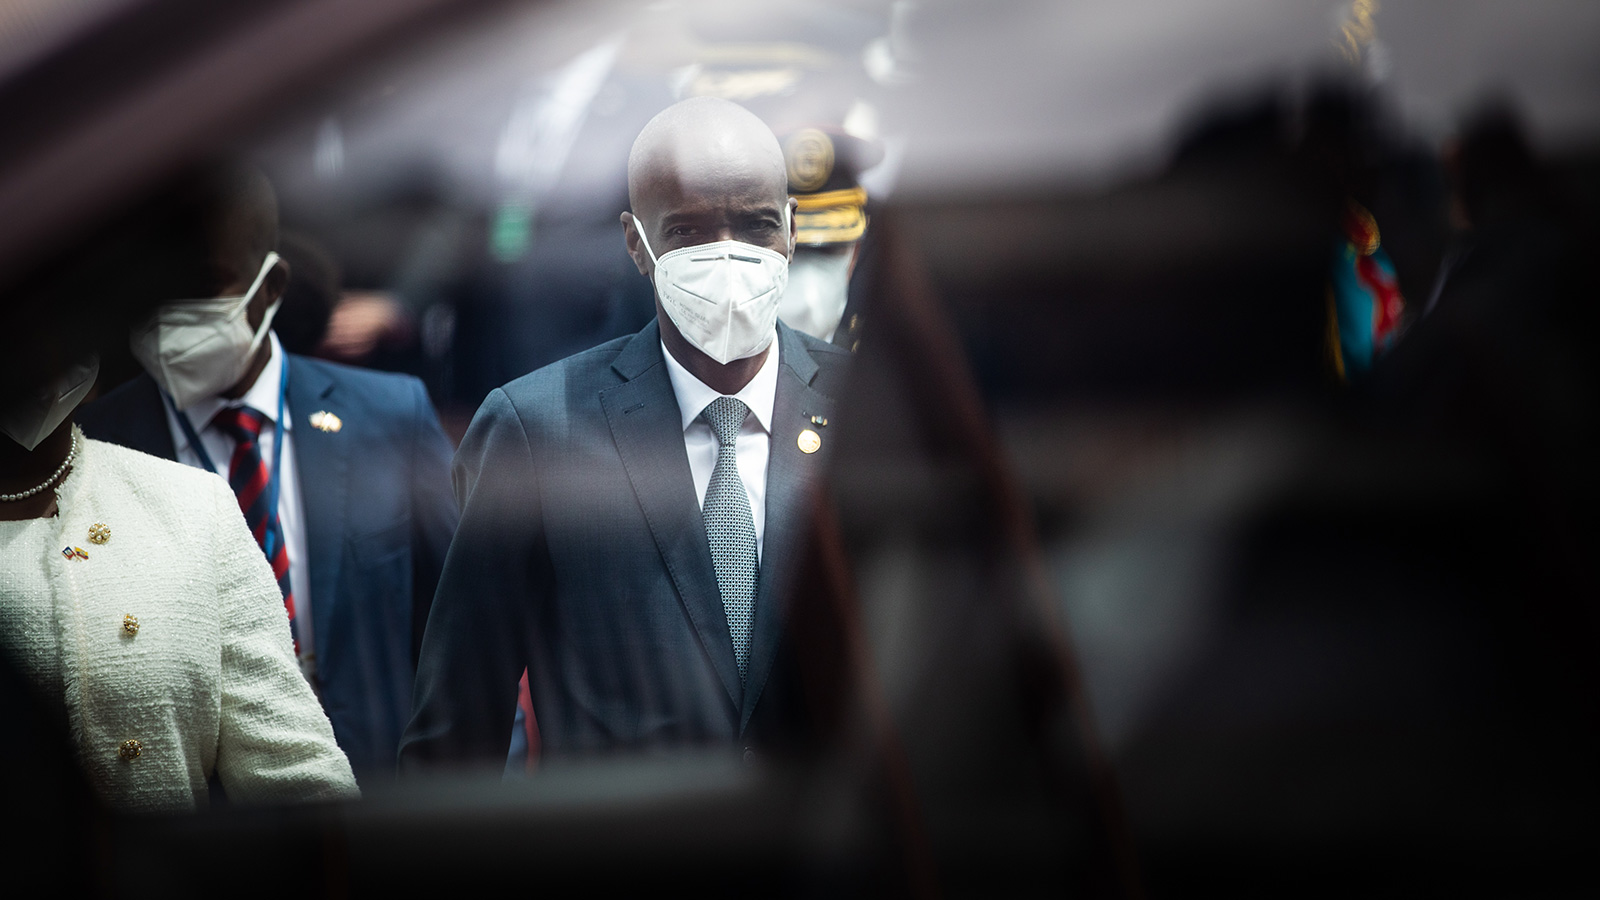 Jovenel Moise, Haiti's president, departs after an inauguration ceremony at the National Assembly in Quito, Ecuador, on Monday, May 24, 2021.